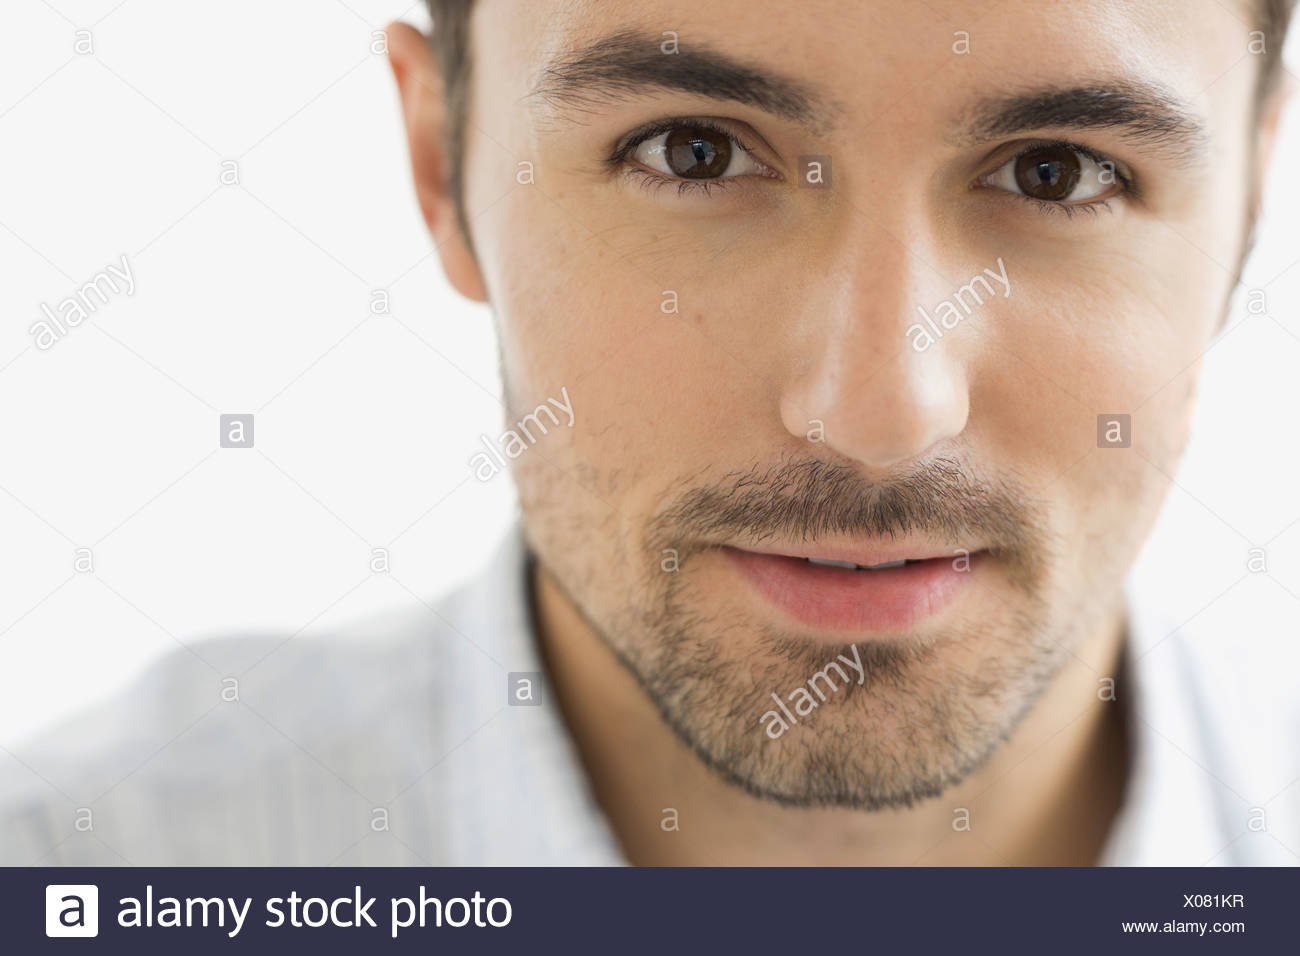 Close-up portrait of confident man - Stock Image